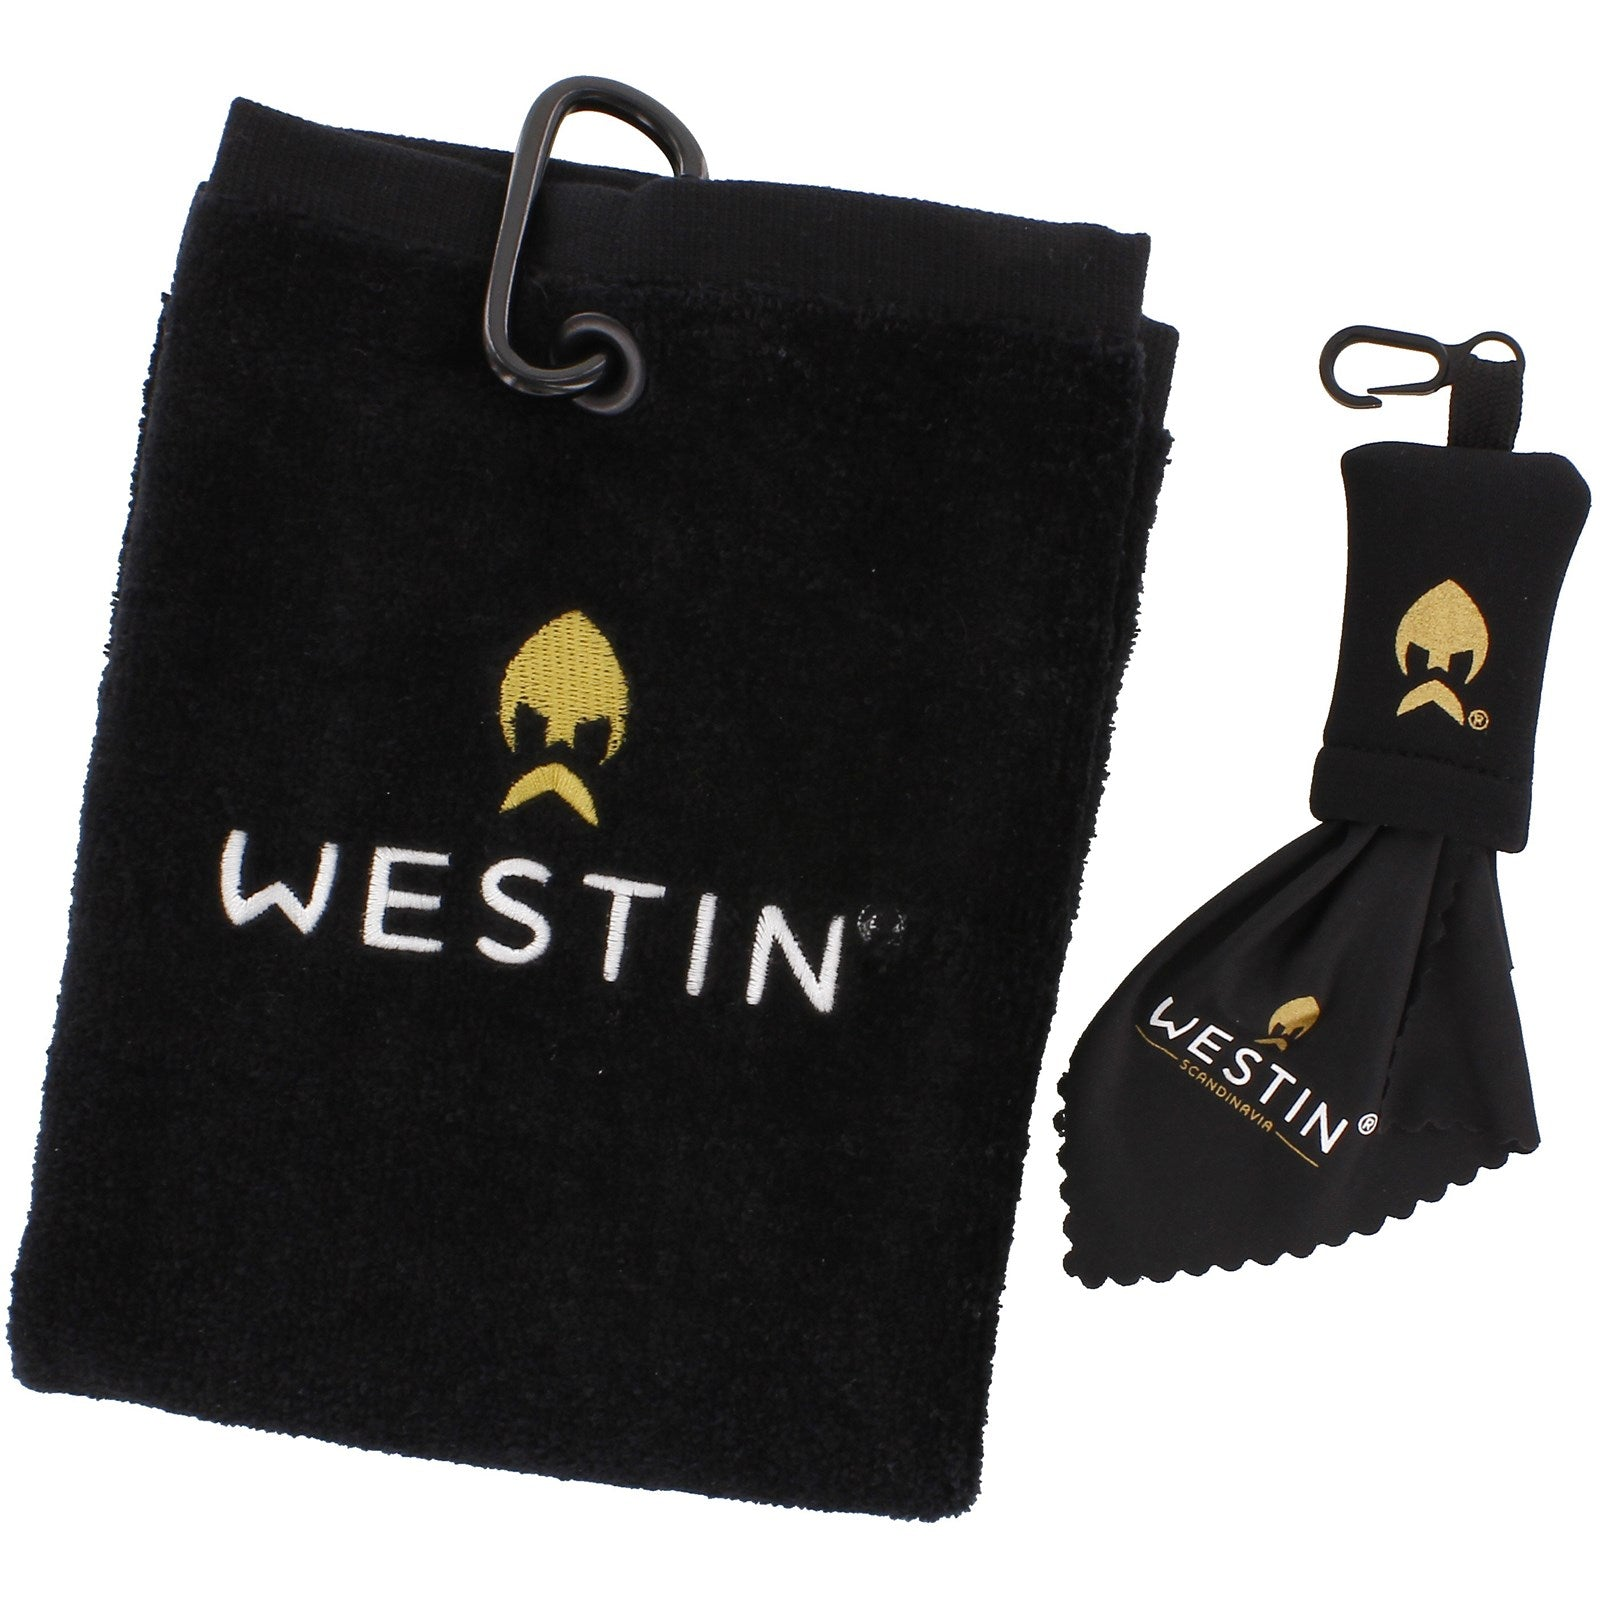 Westin Pro Towel And Lens Cloth - The Lure Box